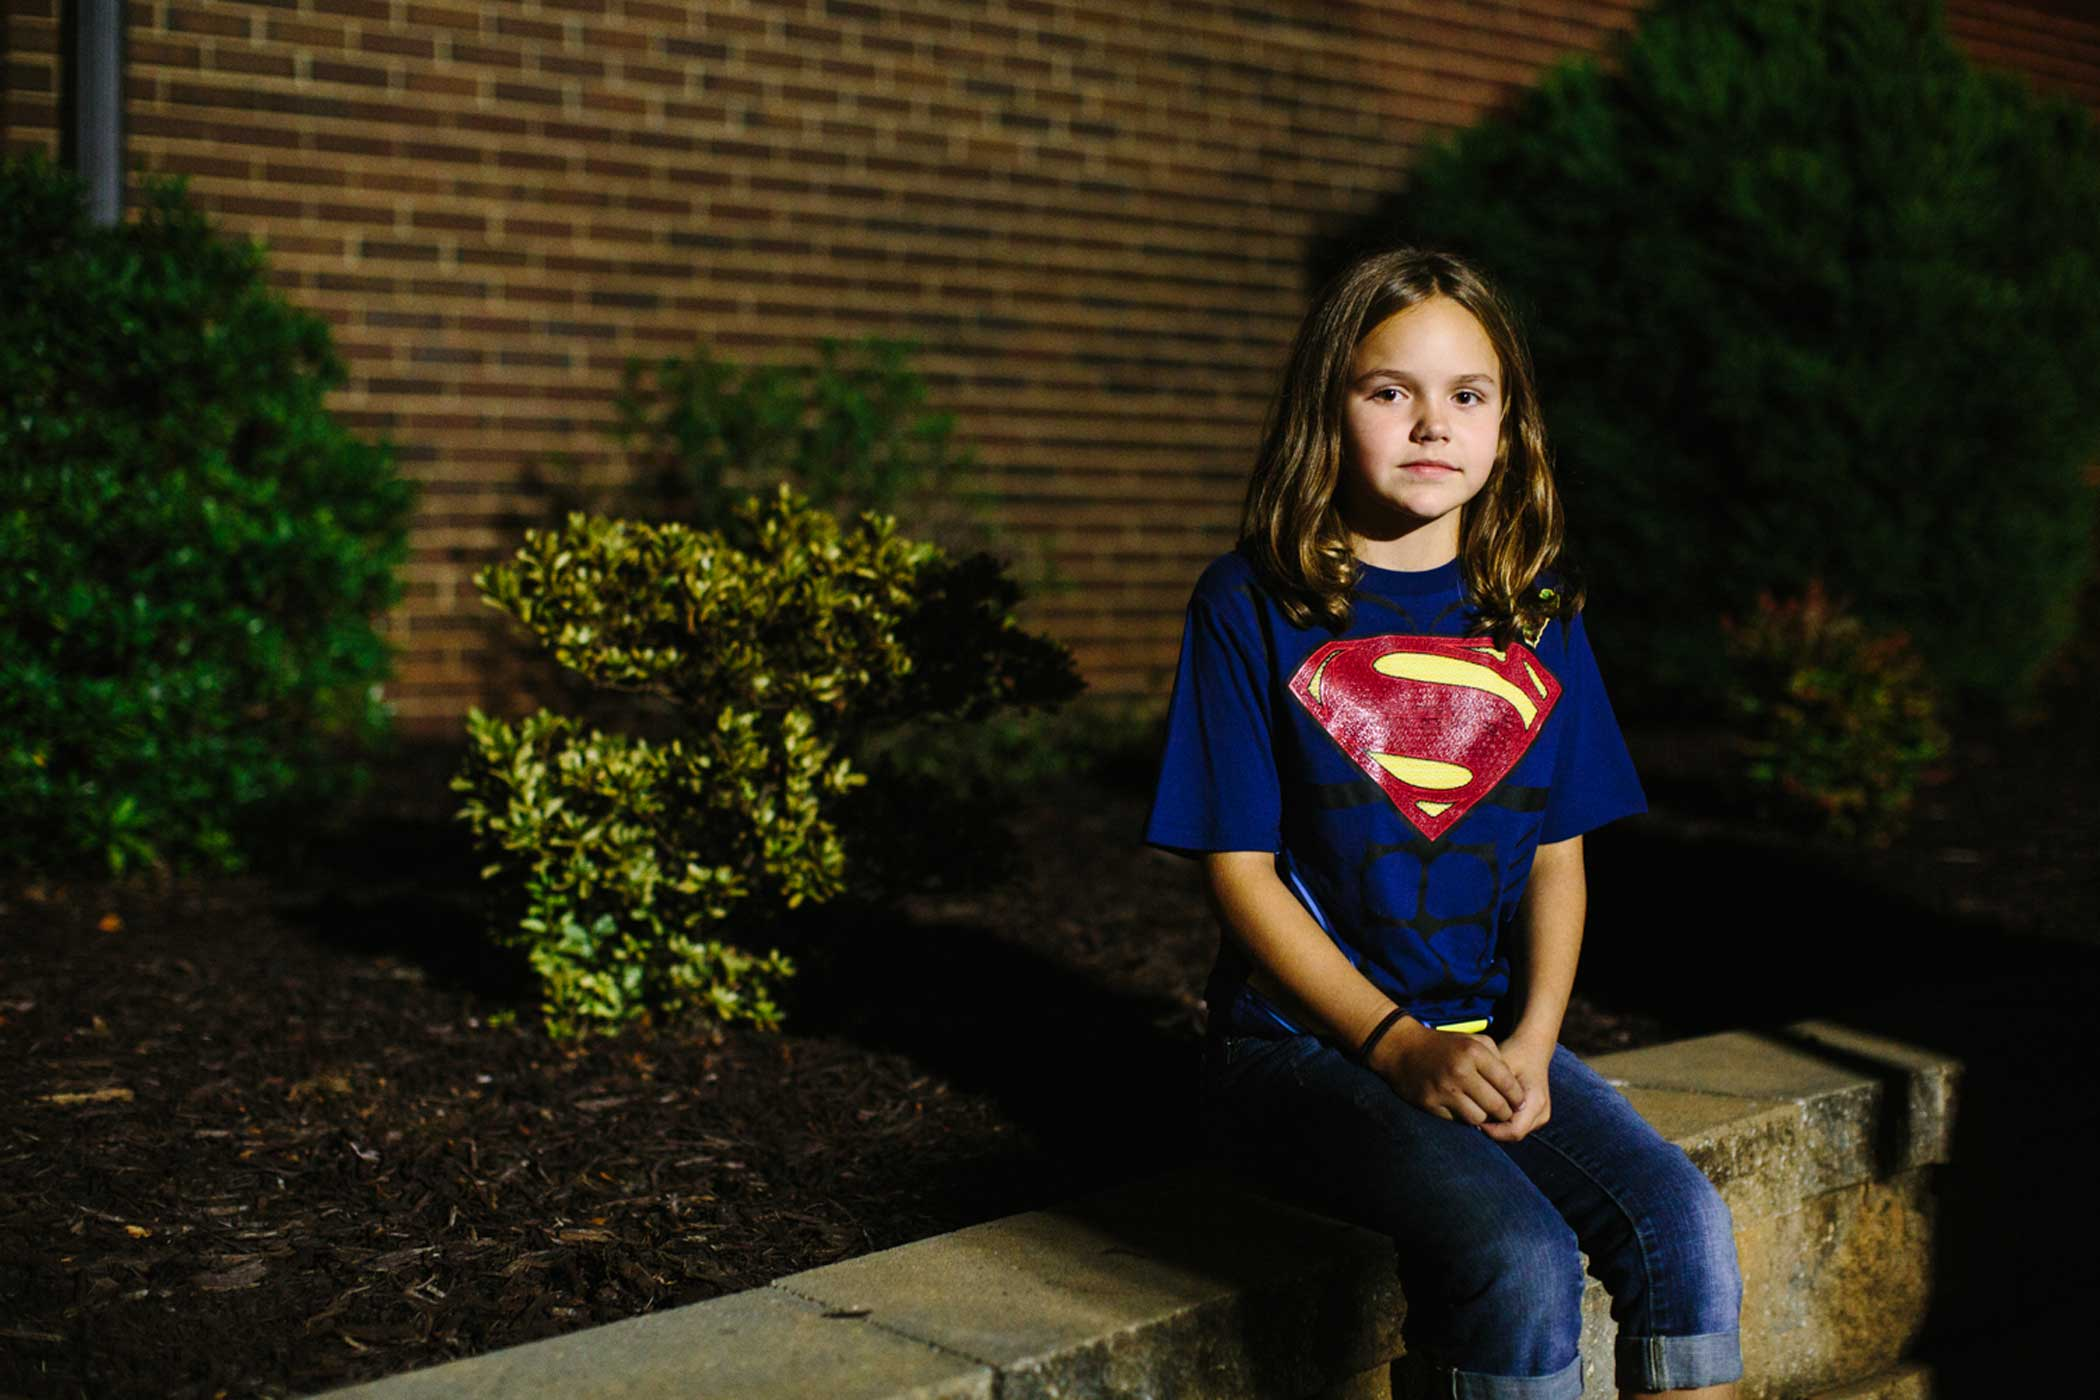 Kylei Cartee, 9, is one of the Hall children's cousins.  The kids are resilient,  said her grandmother, Cindy Kreitz.